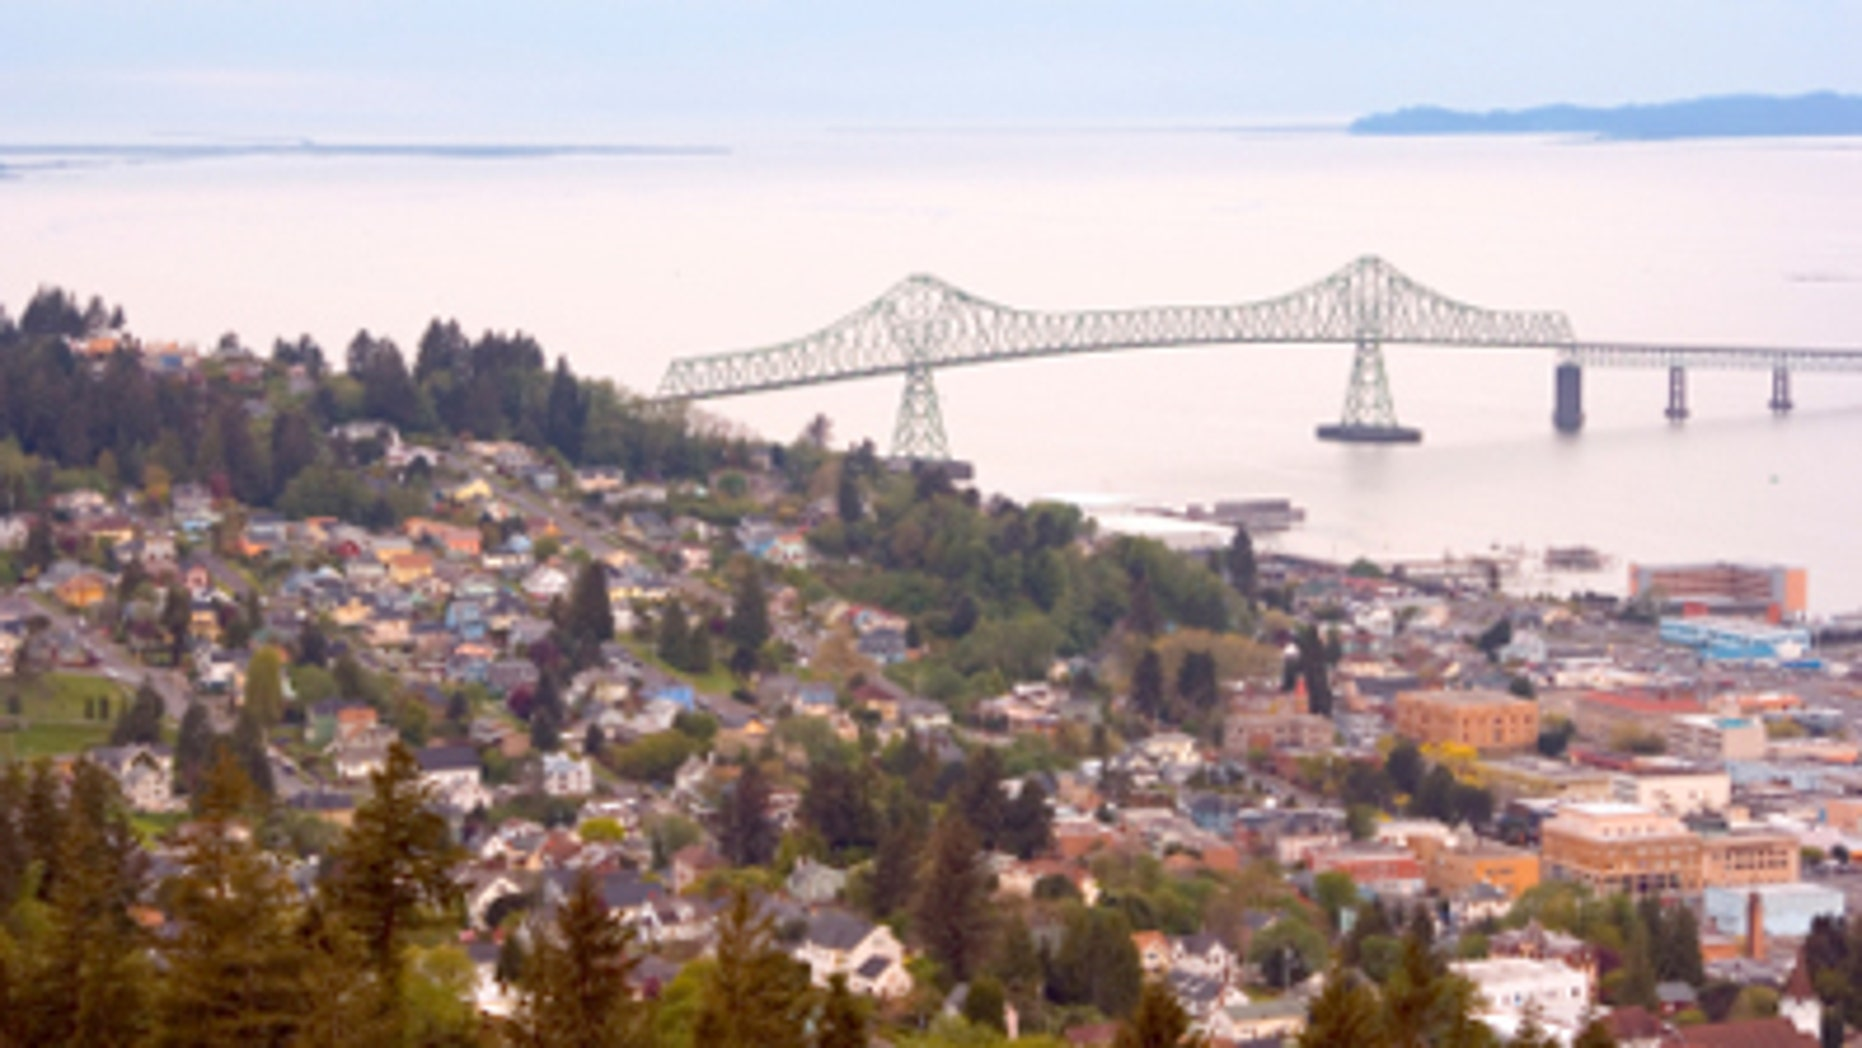 Astoria, Oregon